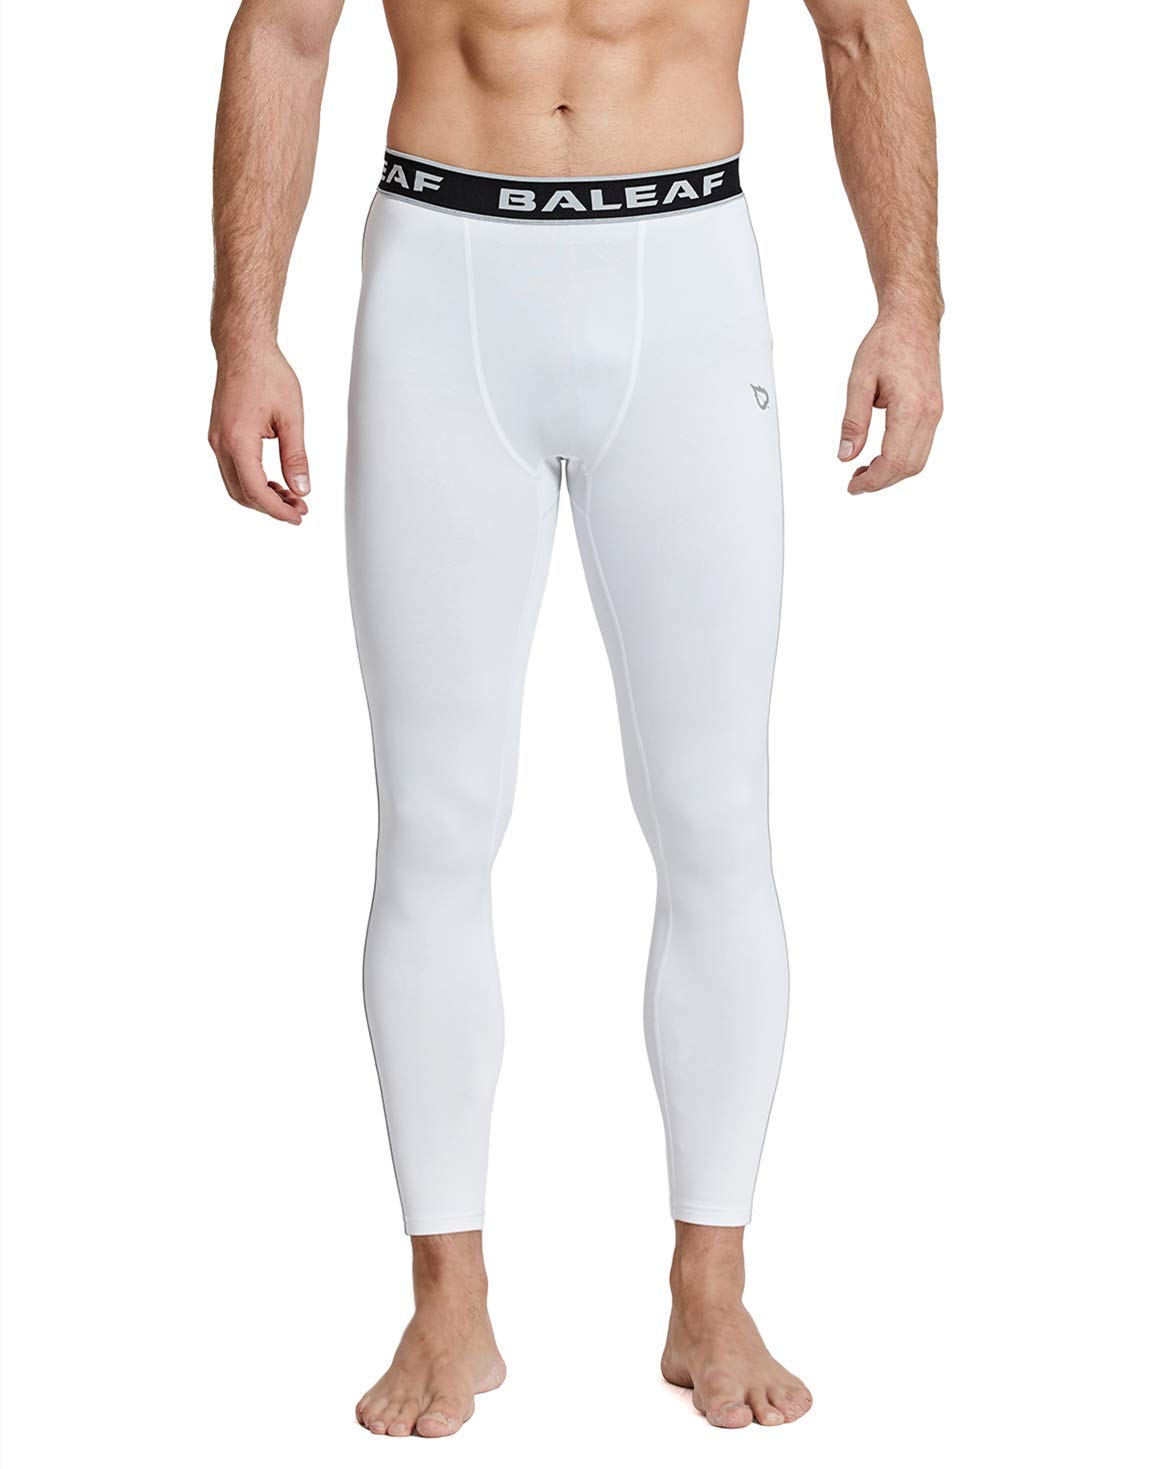 BALEAF Men's Thermal Compression Baselayer Pants Leggings White/Gray Size L by BALEAF